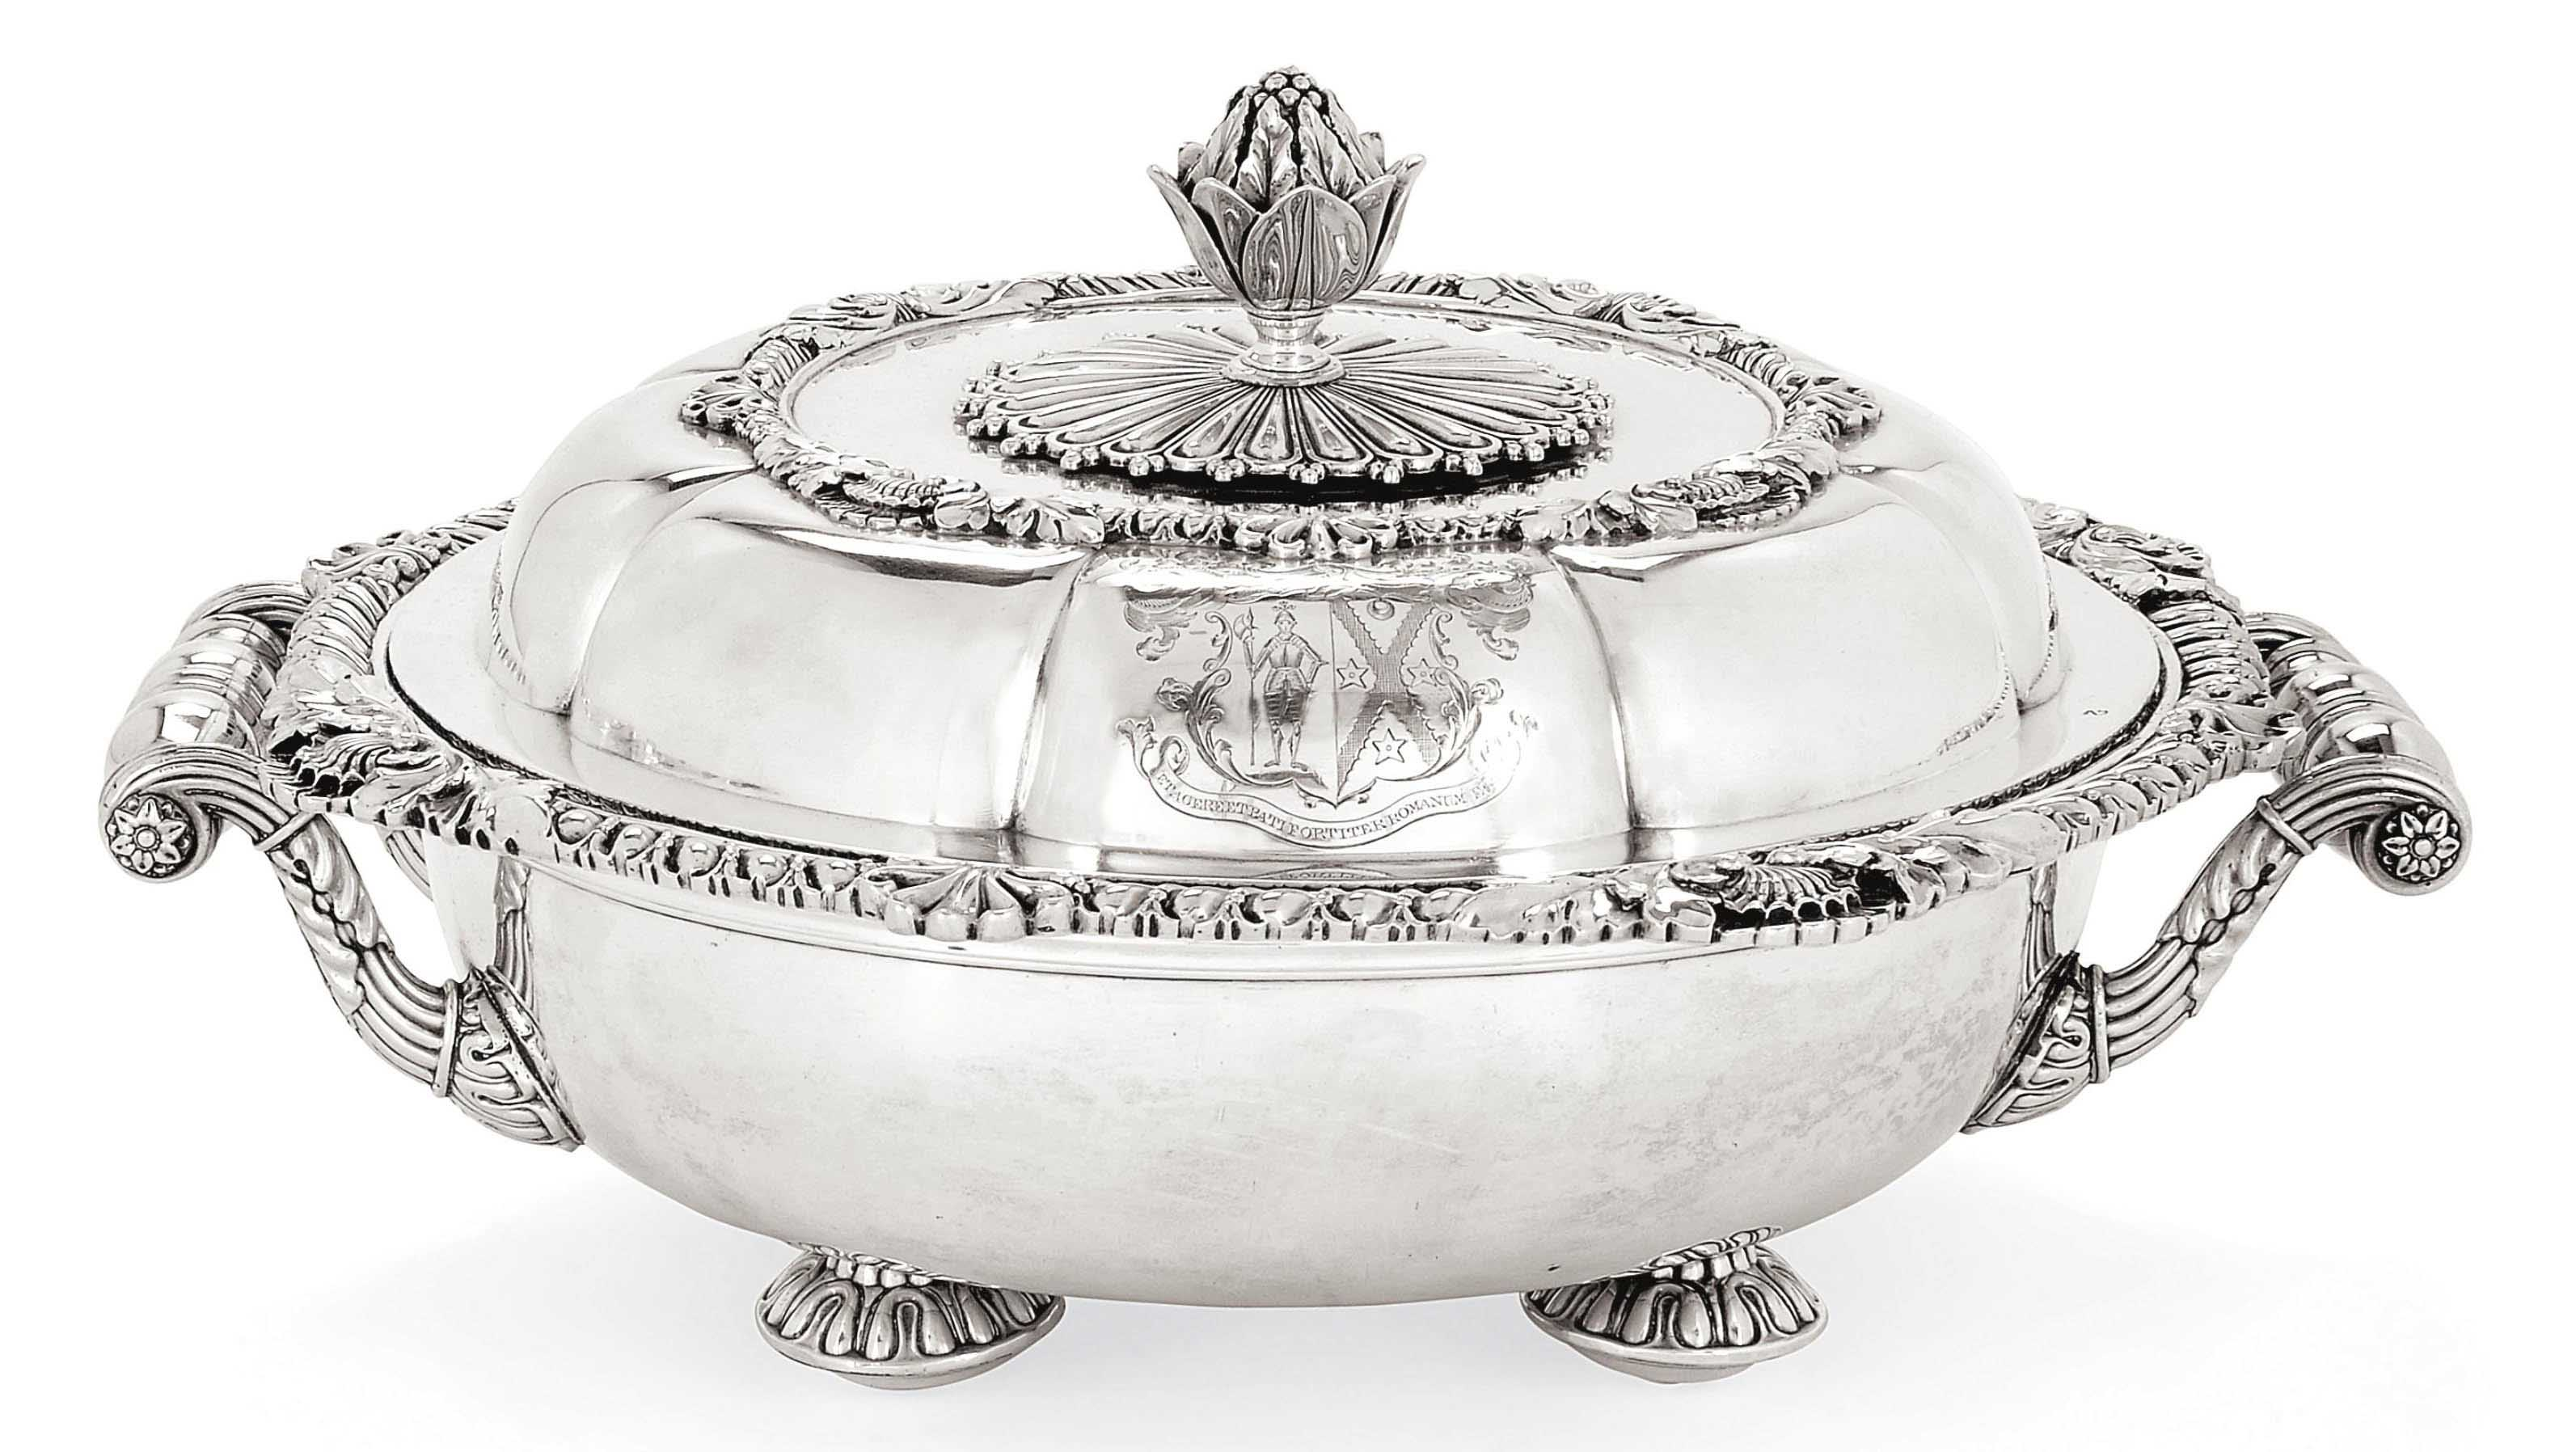 A WILLIAM IV SILVER VEGETABLE DISH & COVER ON OLD SHEFFIELD PLATE WARMING BASE